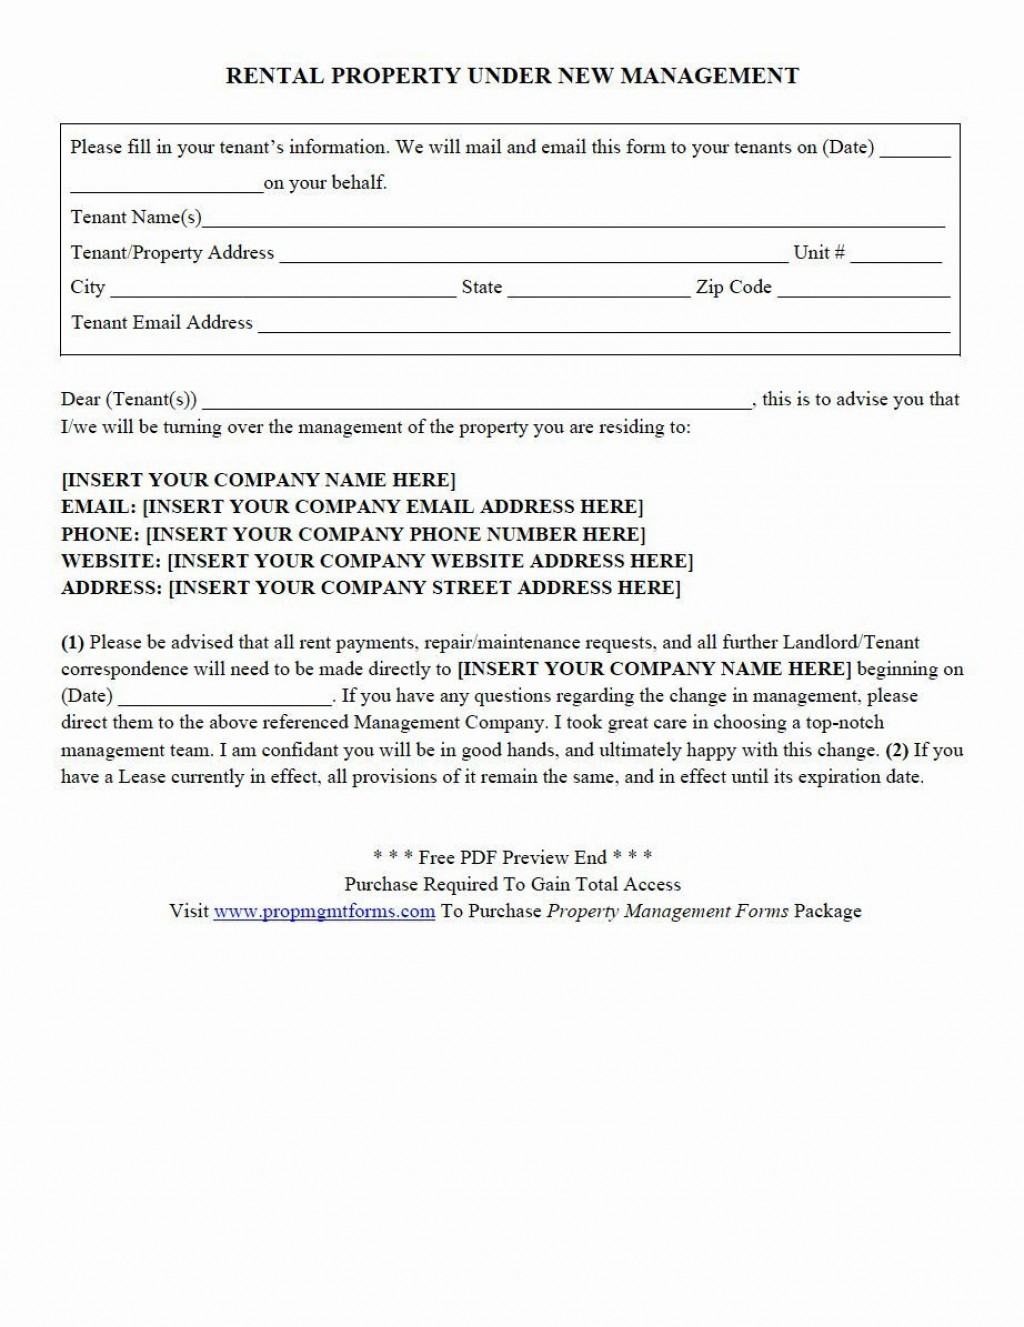 001 Magnificent Property Management Agreement Template High Definition  Templates Sample Termination Of Commercial FormLarge